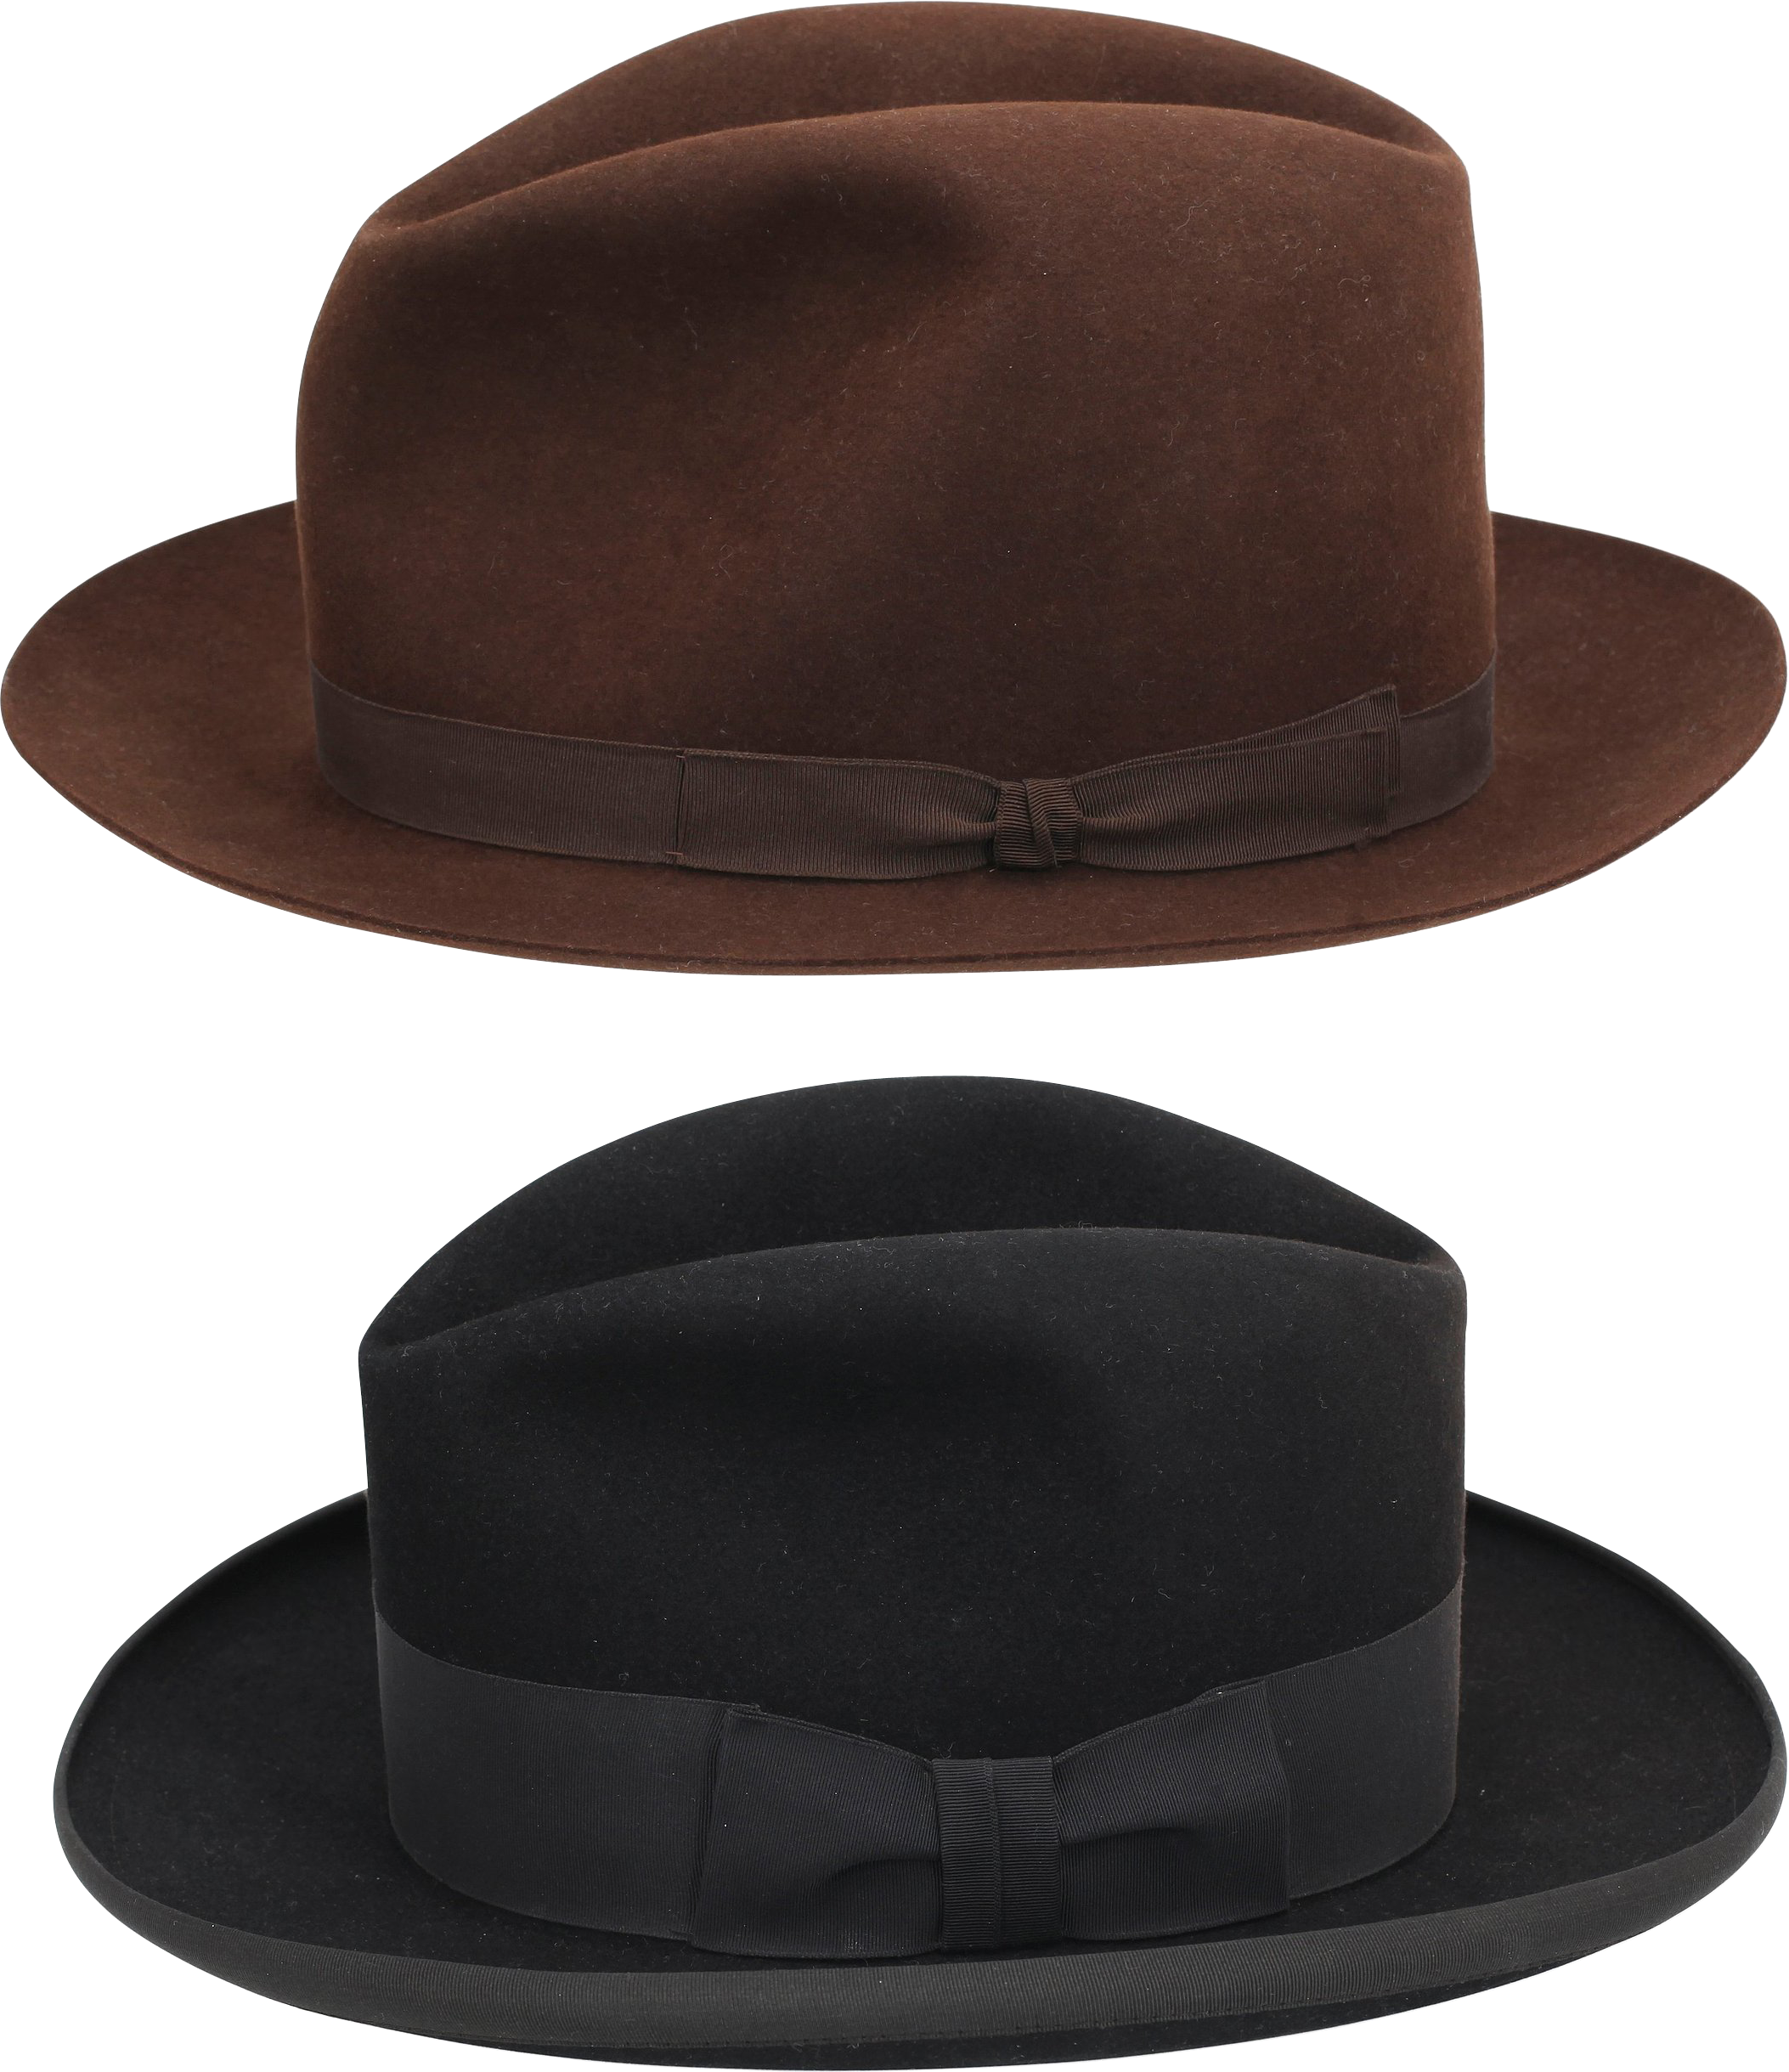 Fedora .png. Hat png images free